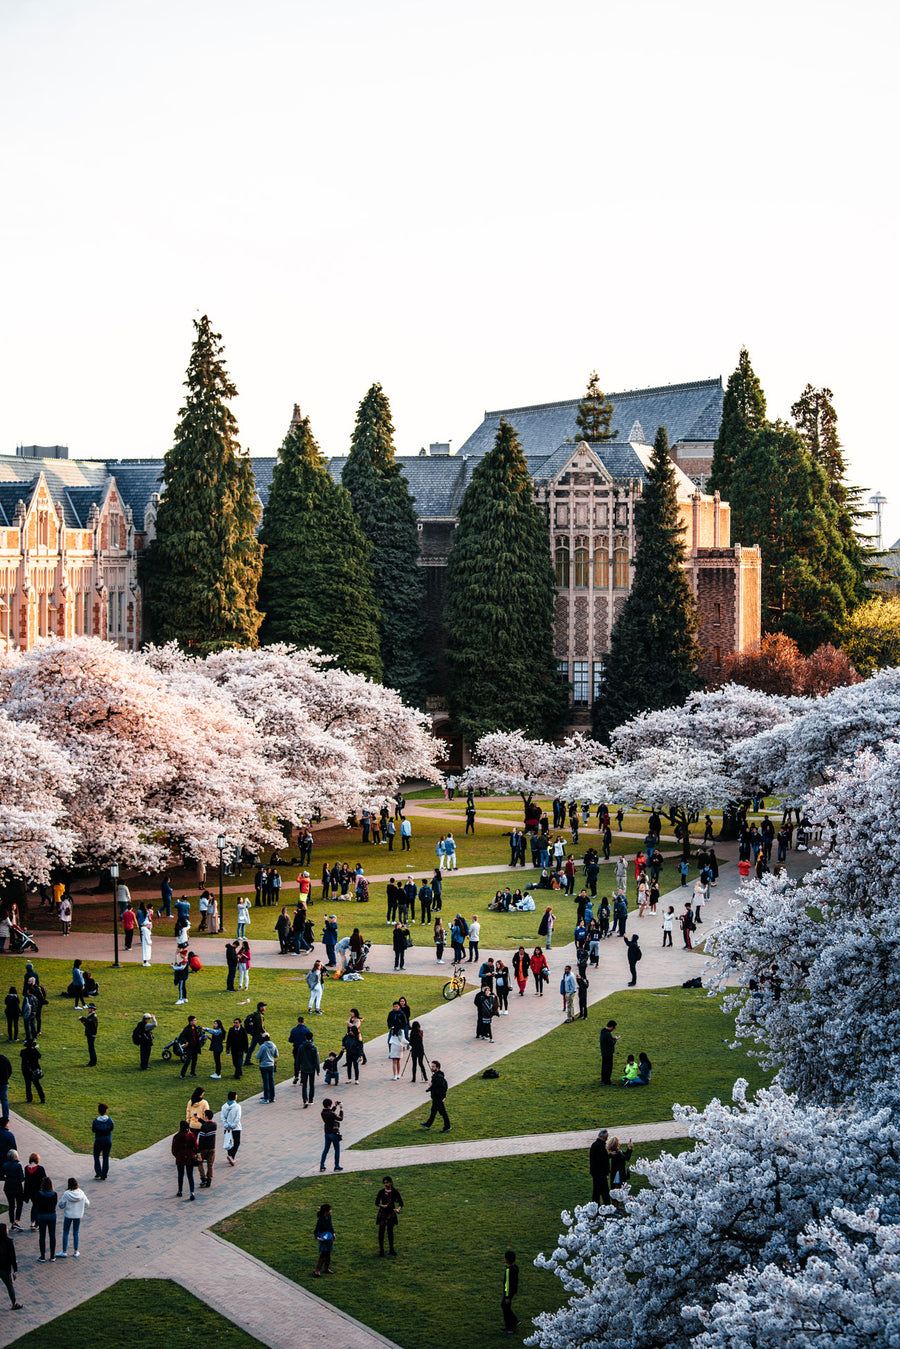 THE UNIVERSITY OF WASHINGTON SAKURA